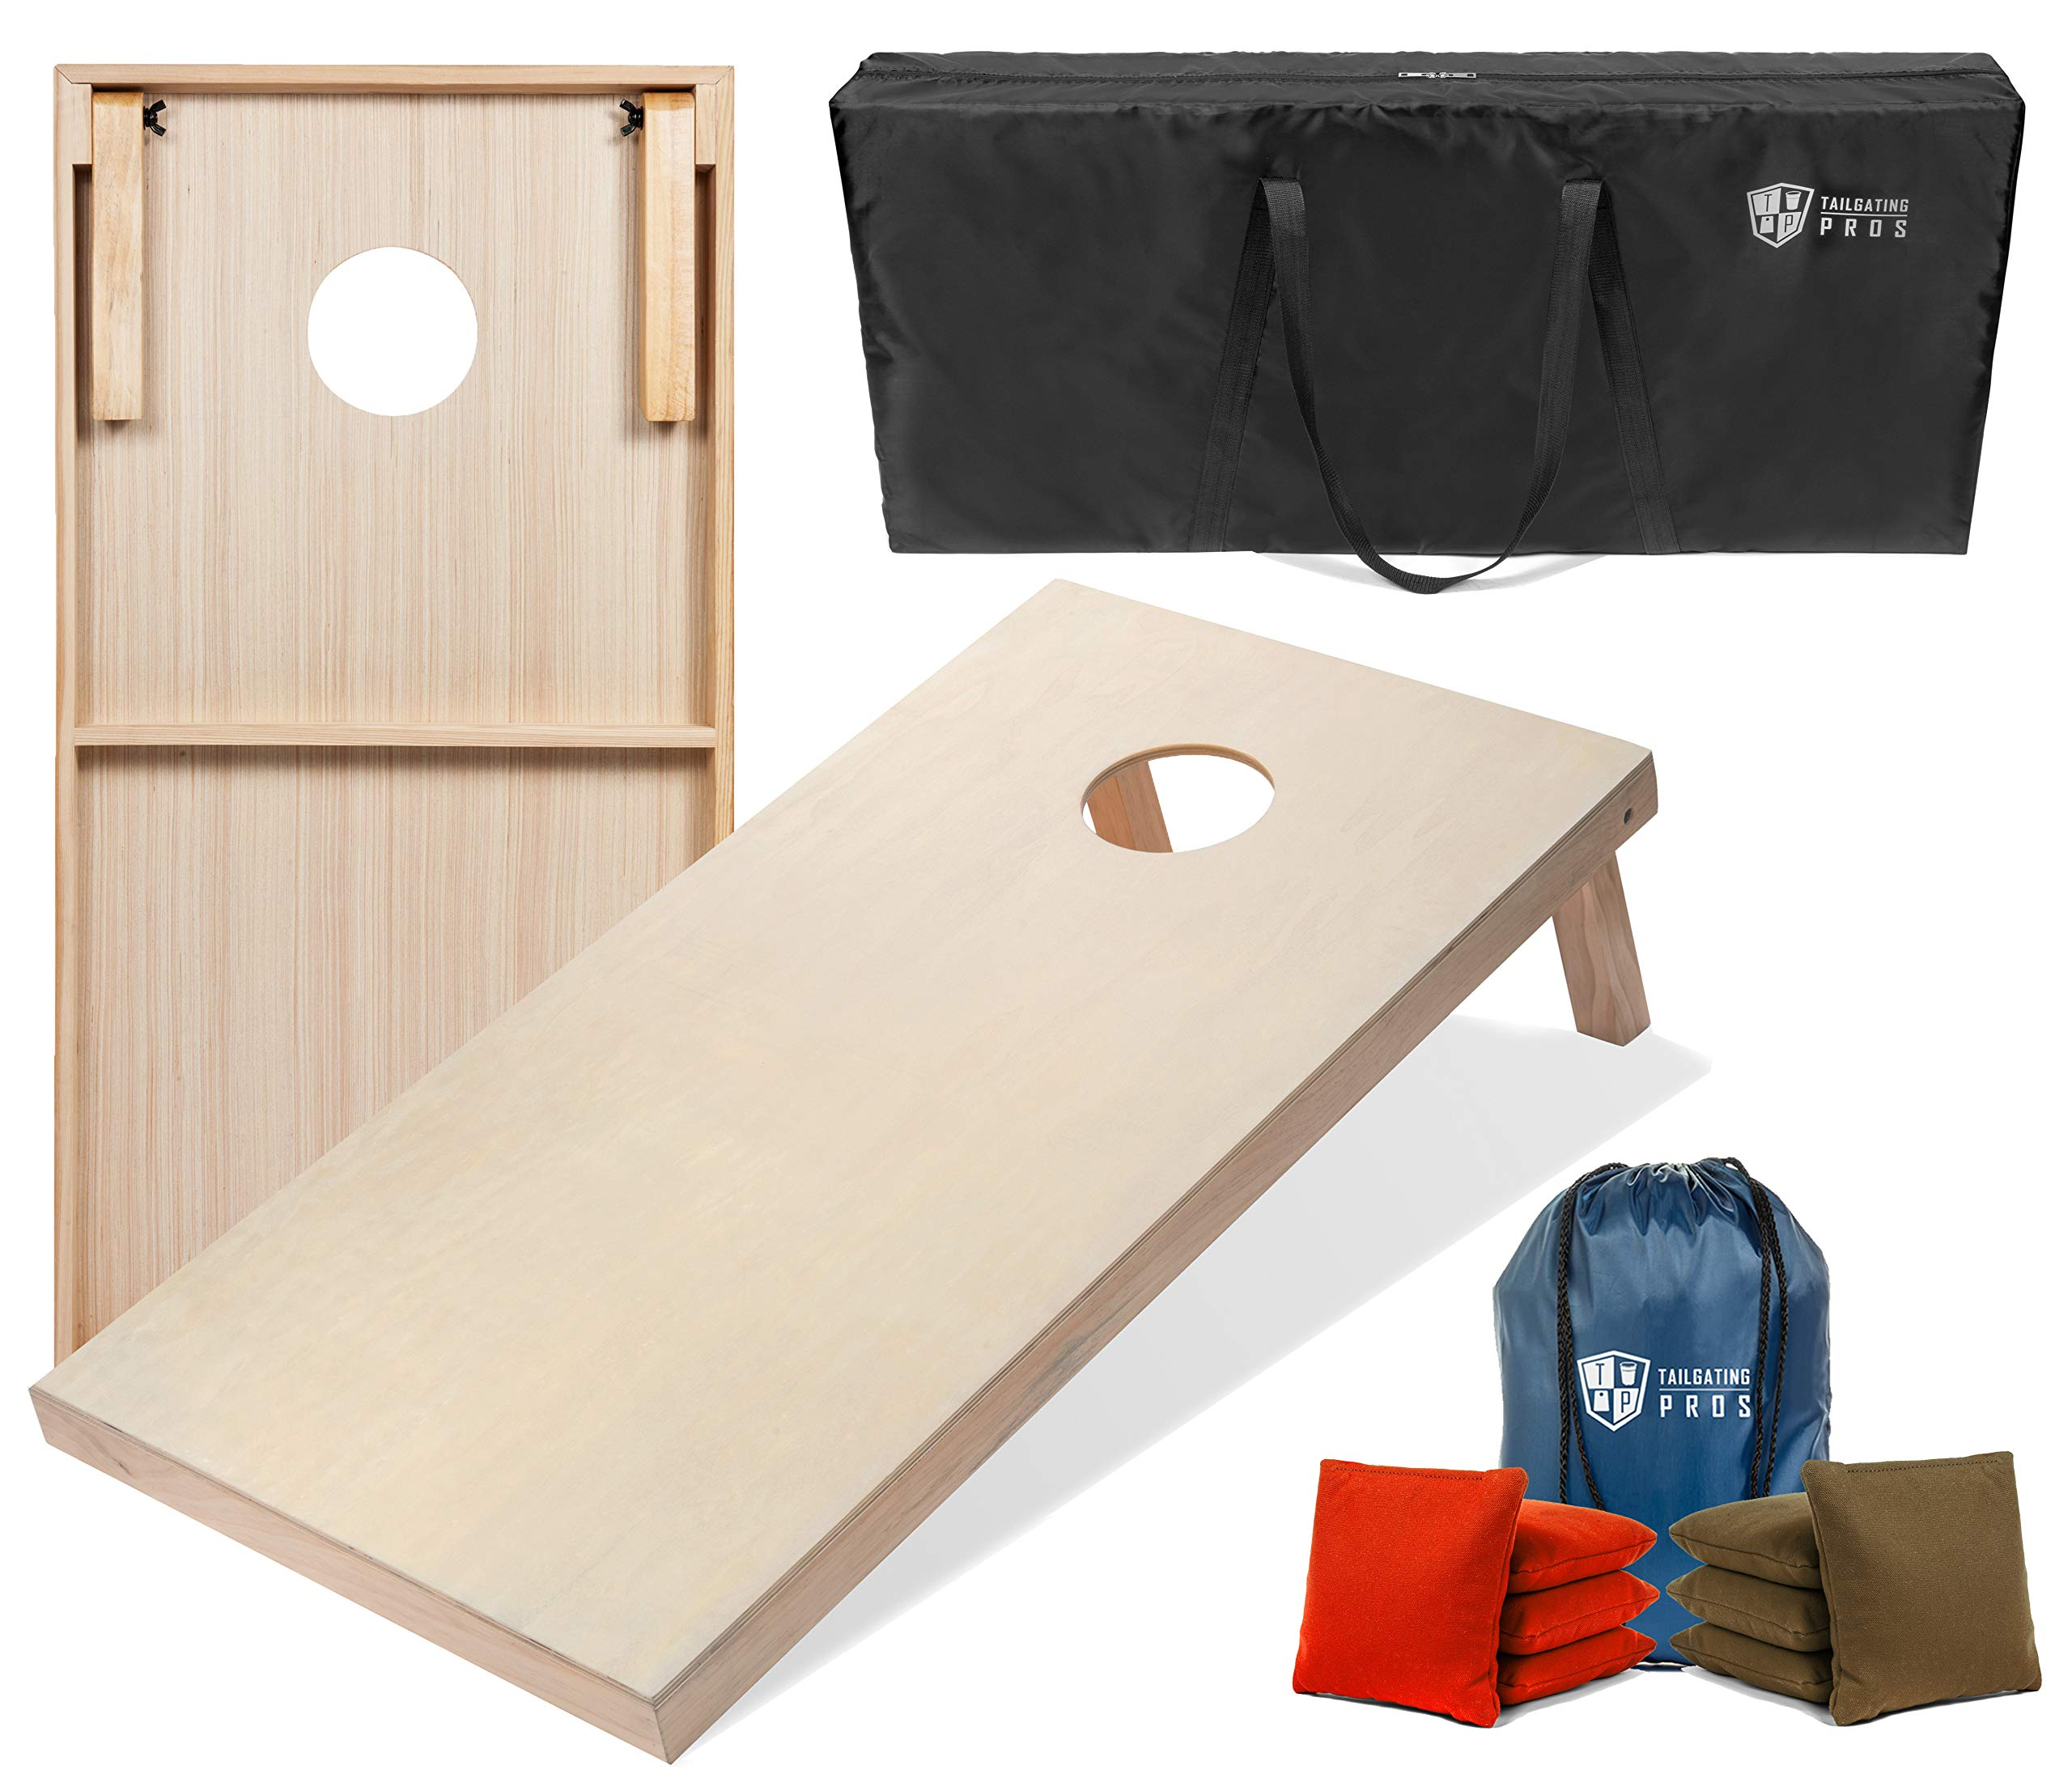 Tailgating Pros Cornhole Boards - 4'x2' & 3'x2' Cornhole Game w/Carrying Case & Set of 8 Corn Hole Bags - 150+ Color Combos! Optional LED Lights by Tailgating Pros